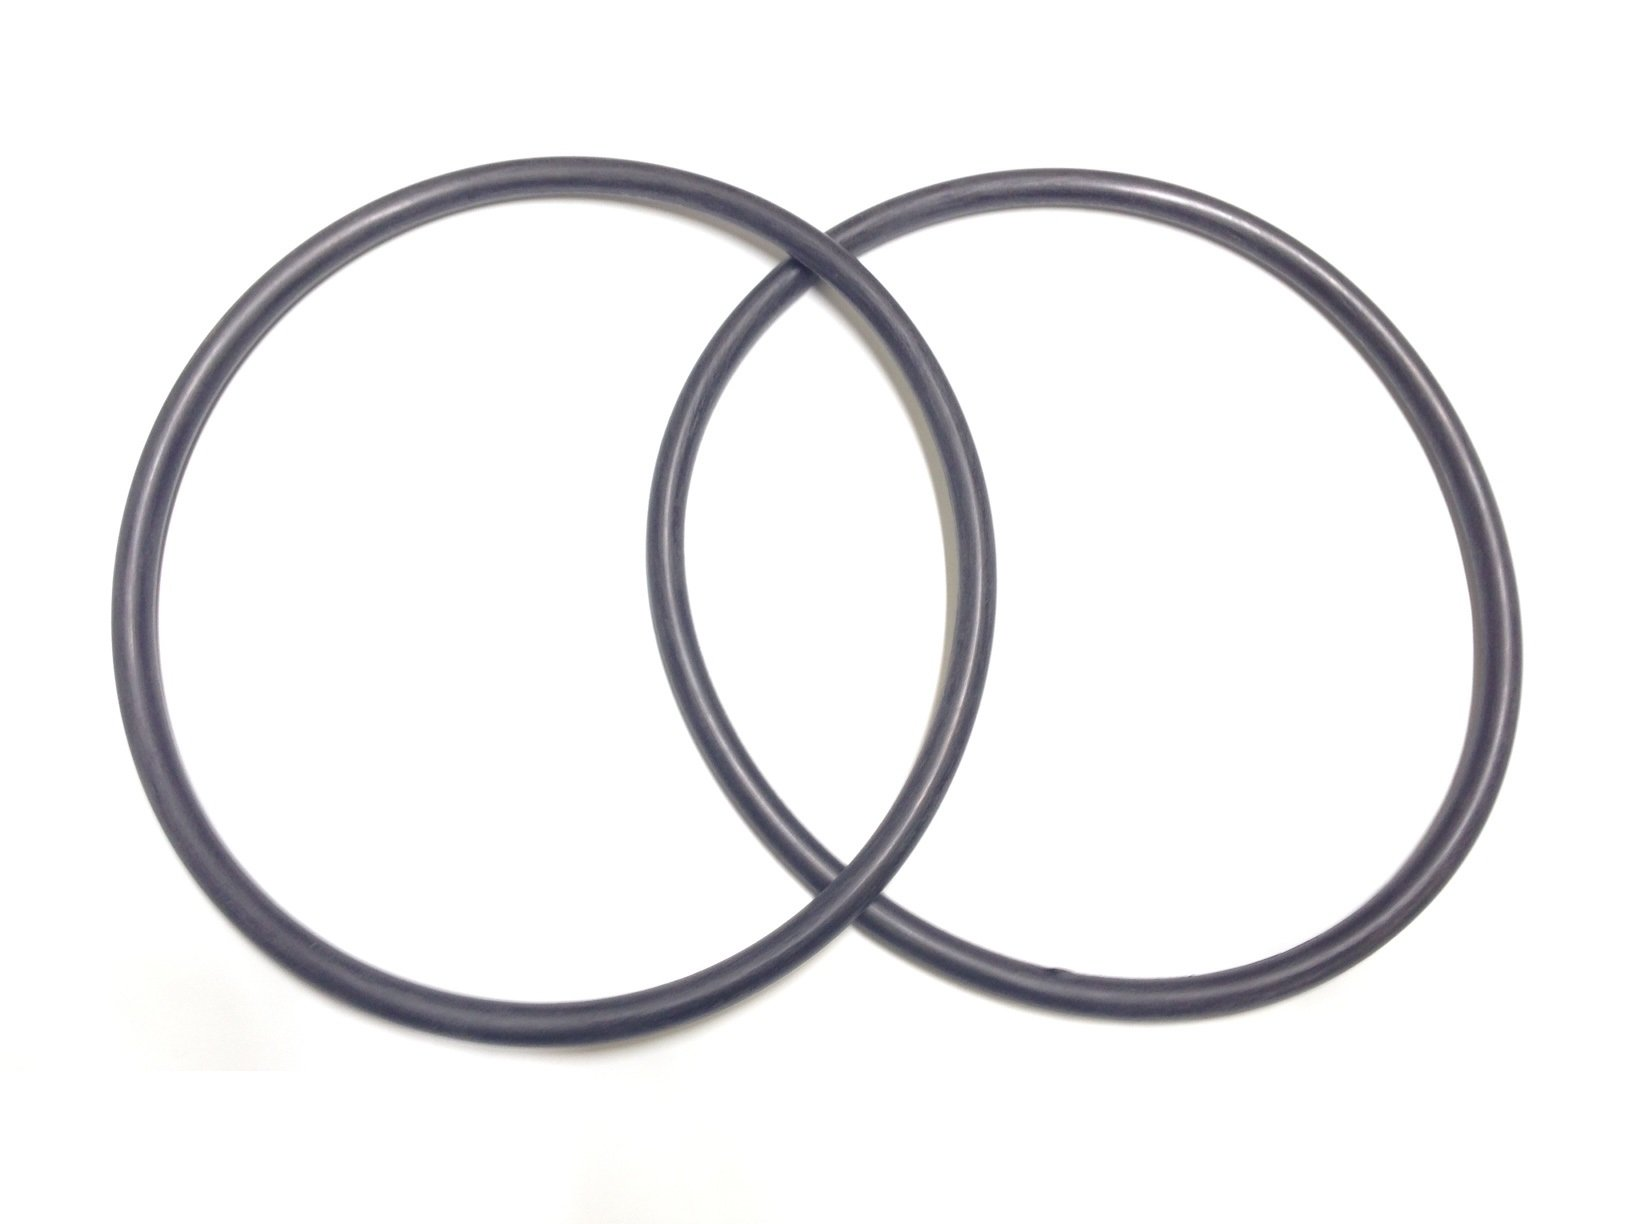 2 Pack O-Ring Replacement For Hayward W530 W560 Leaf Canister Lid O-ring AXW542 O-330